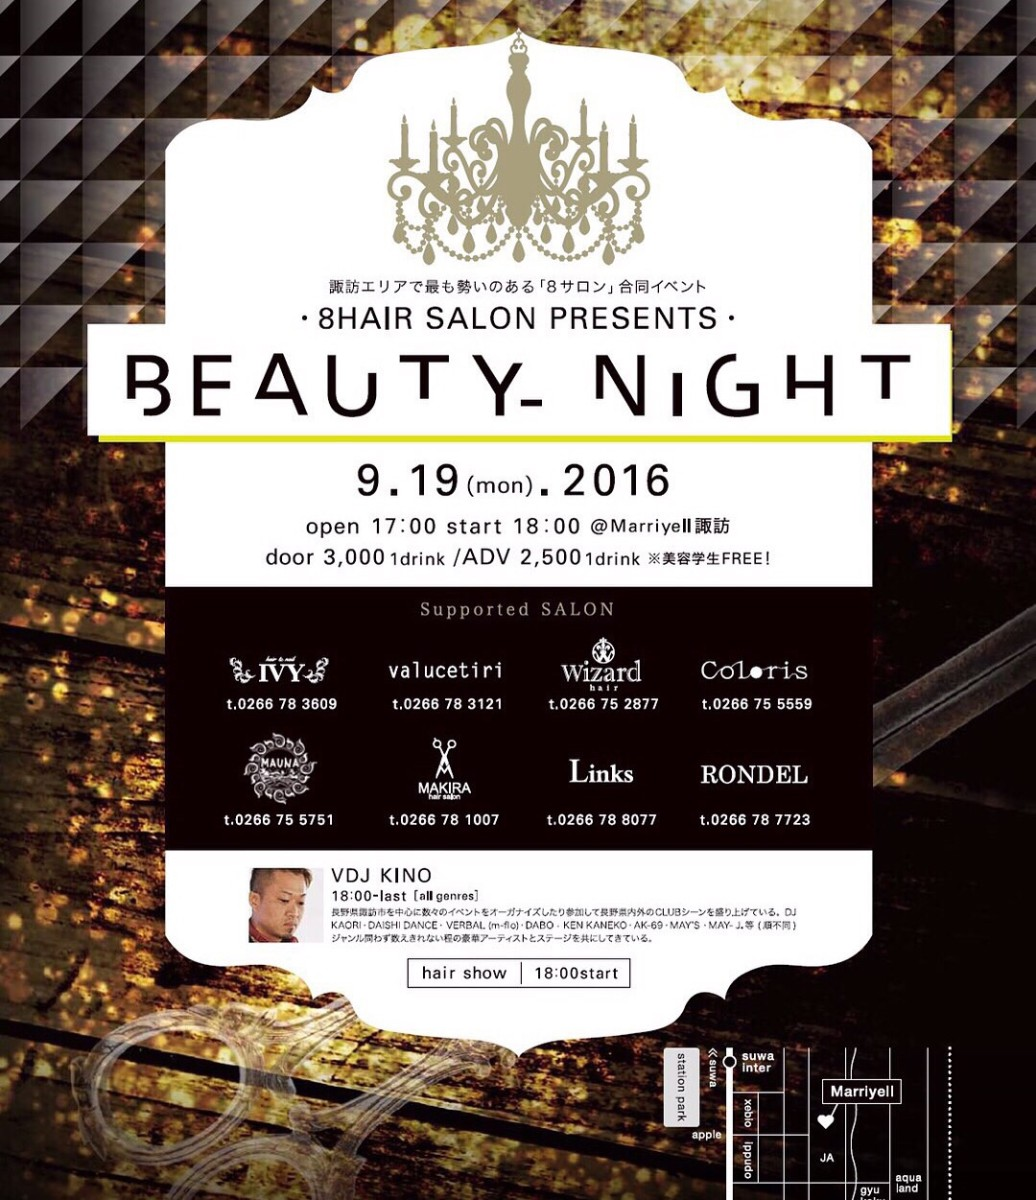 ・8HAIR SALON PRESENTS・BEAUTY-NIGHT